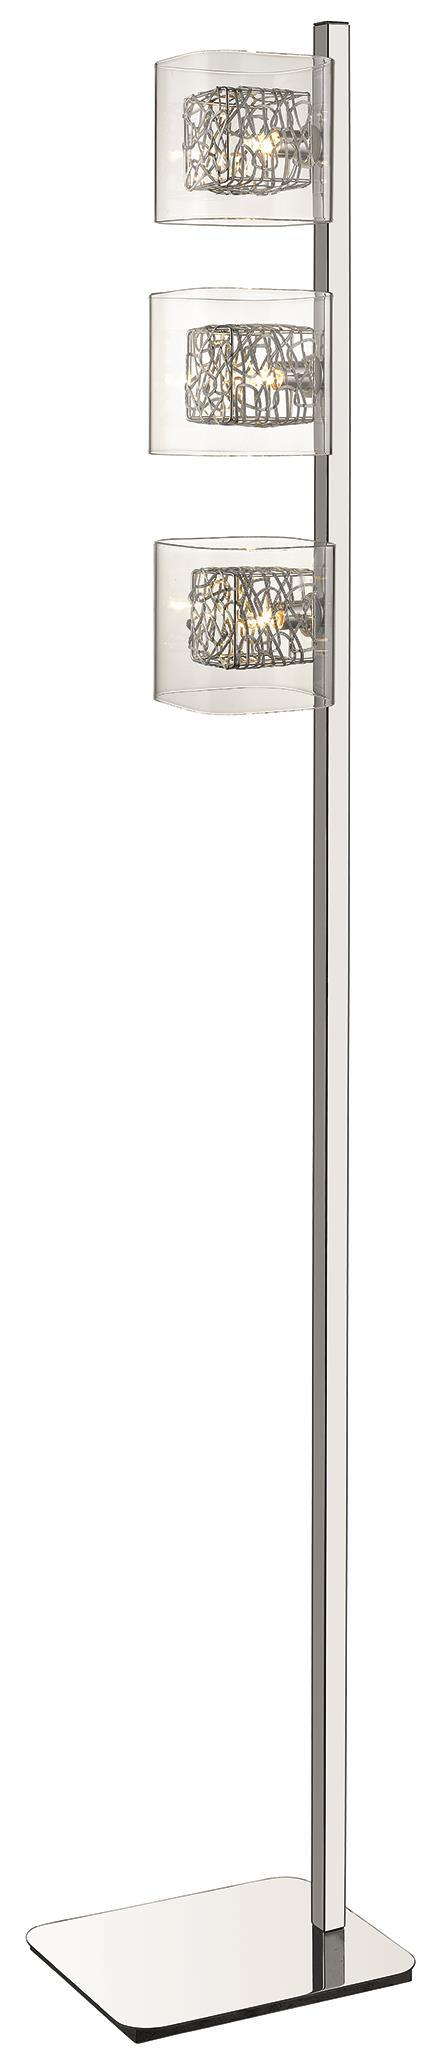 SND Lighting SND217 Paris 3 Light Floor Lamp Chrome - SND Electrical Ltd